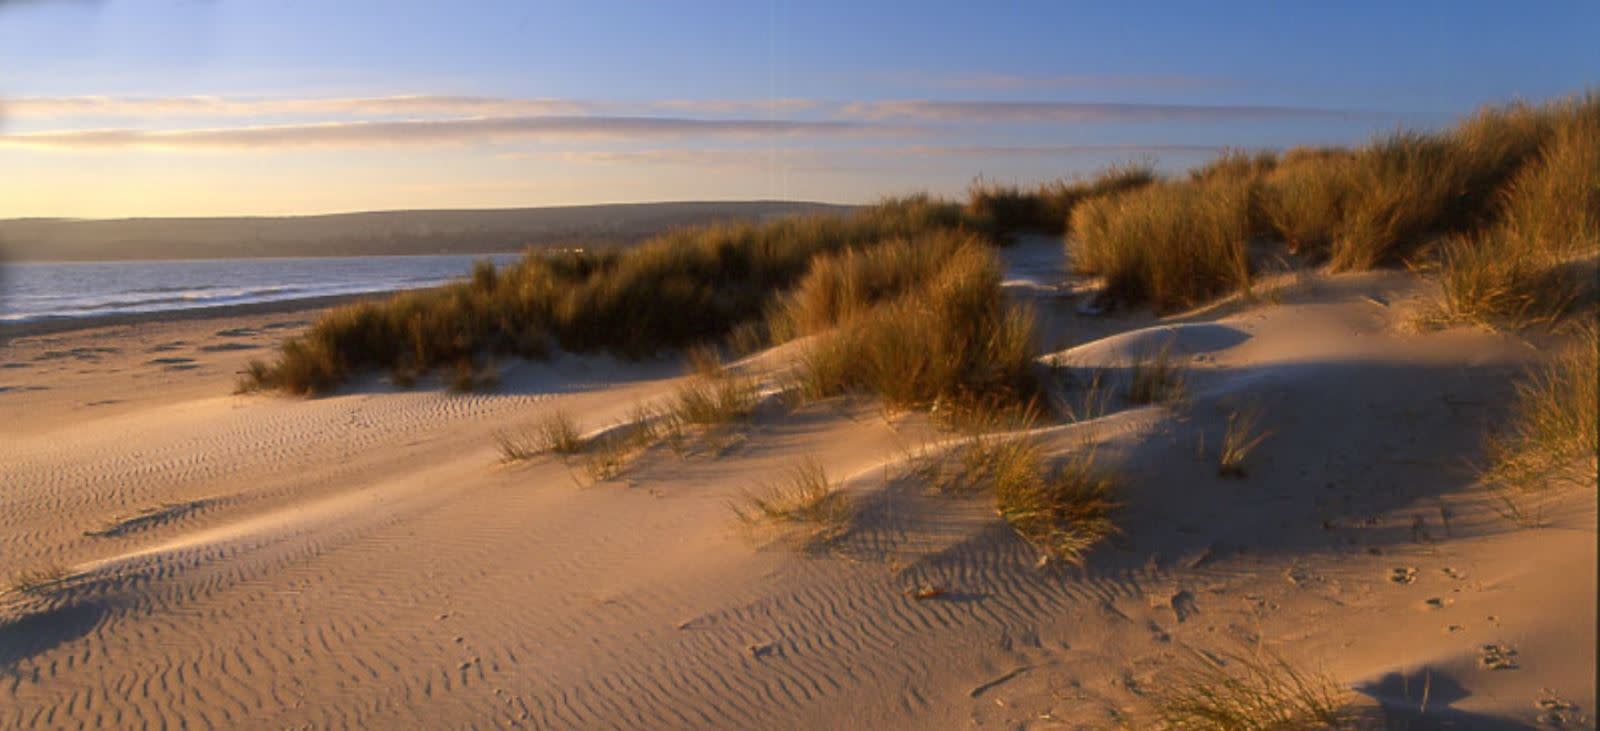 The exotic white sands of Studland Bay